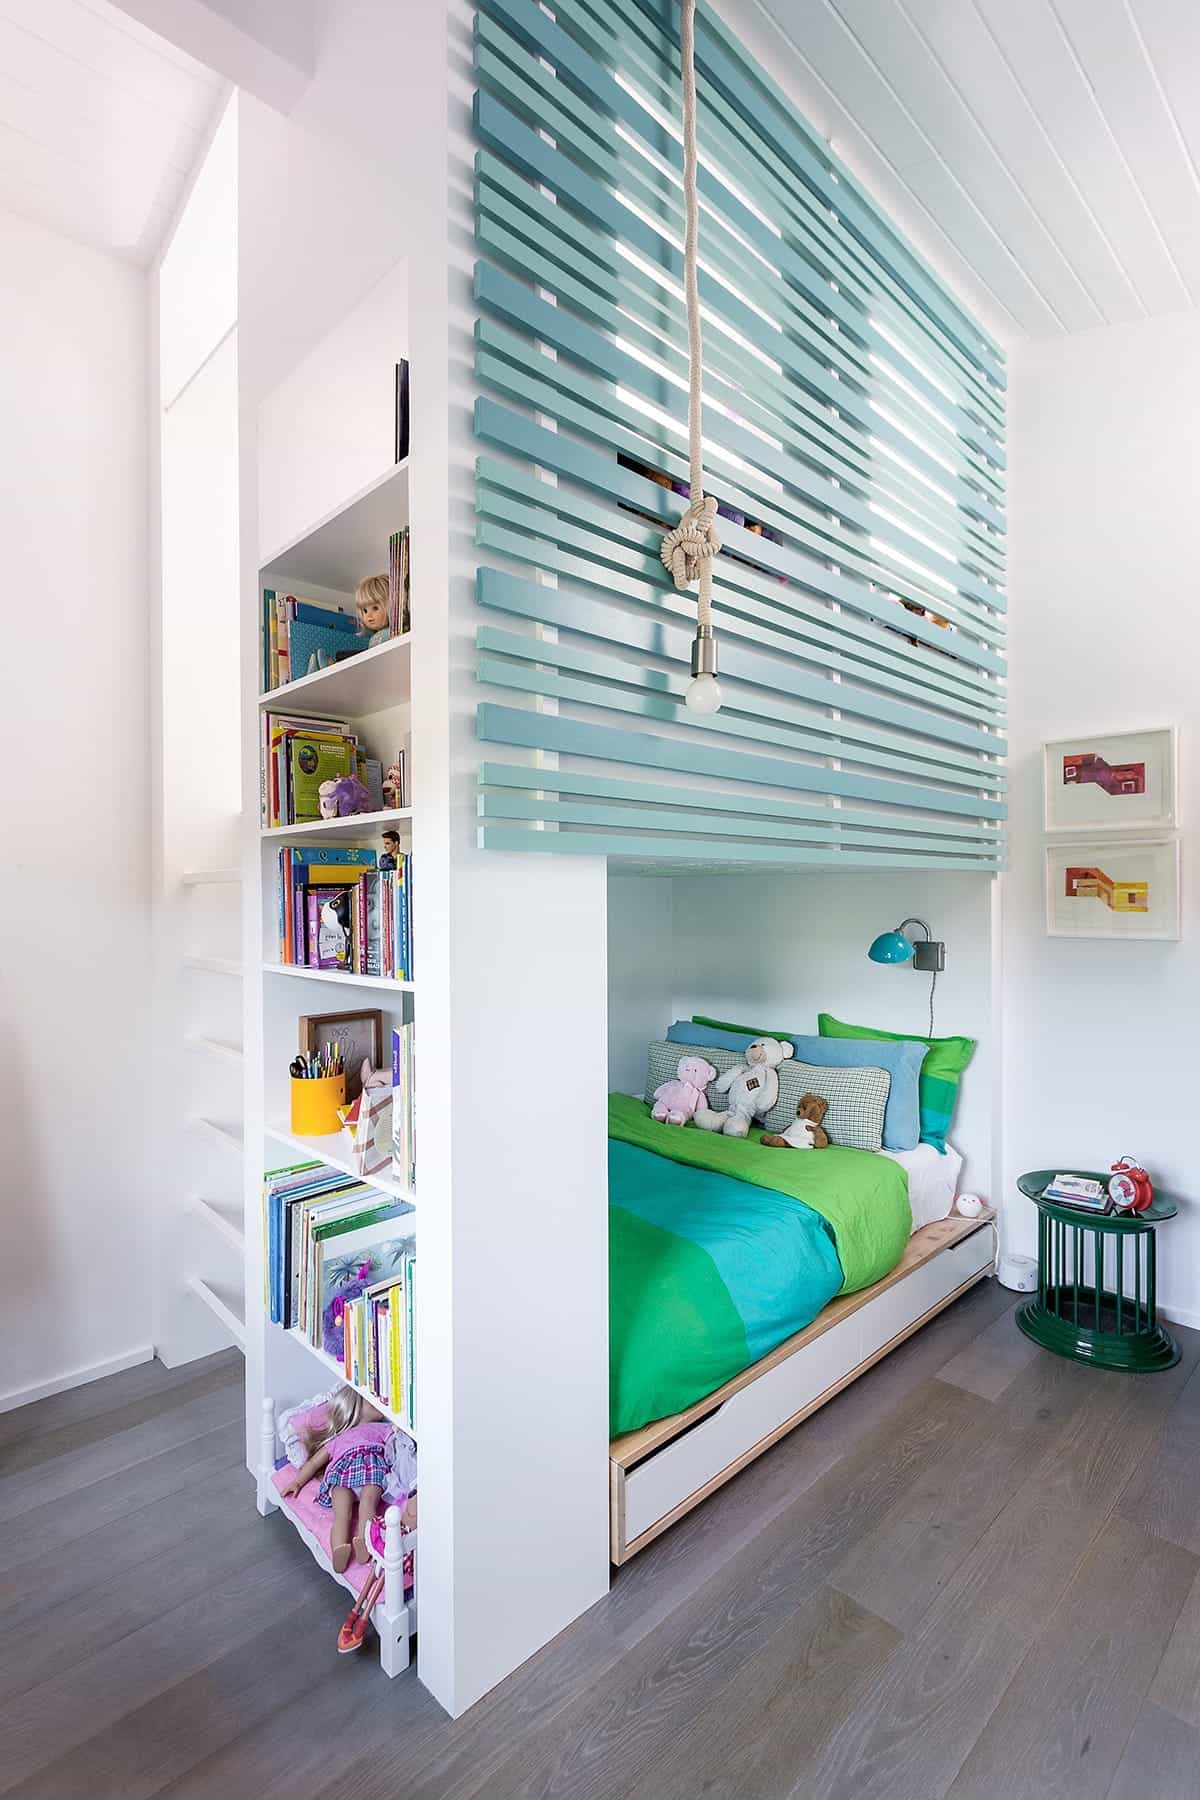 Children's Bunk Bed With Bookcase Built In (Image 8 of 27)